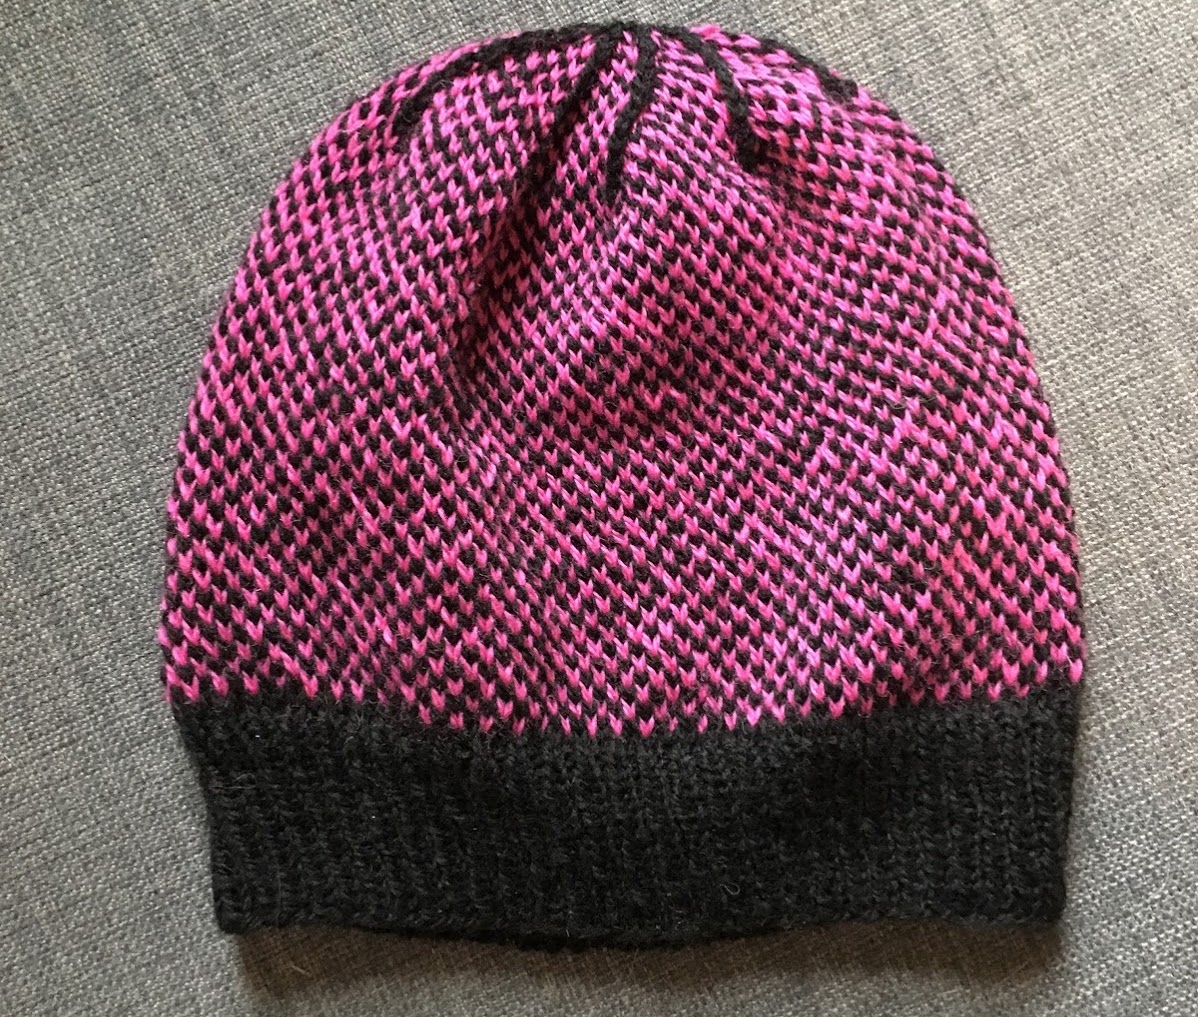 learn to knit 3